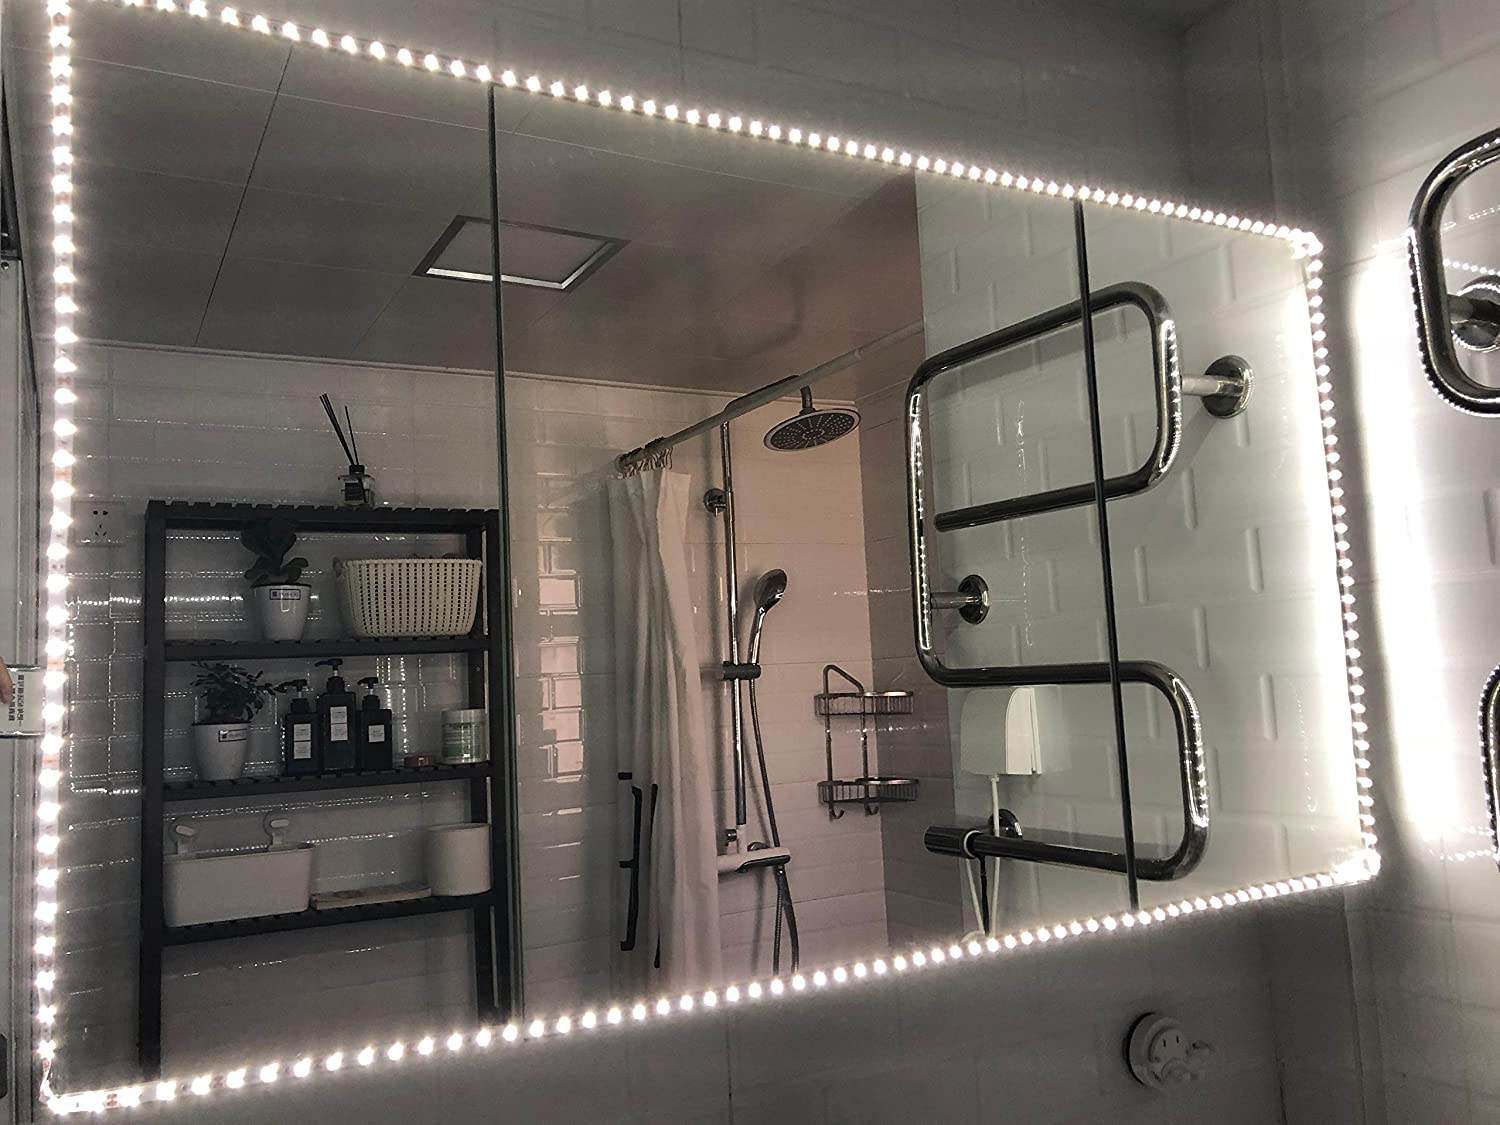 Mirror not Included 13ft//4M Make-up Vanity Mirror Light kit for Makeup Dressing Table Vanity Set Mirrors with Dimmer and Power Supply by Rich Home Supplies Led Vanity Mirror Lights